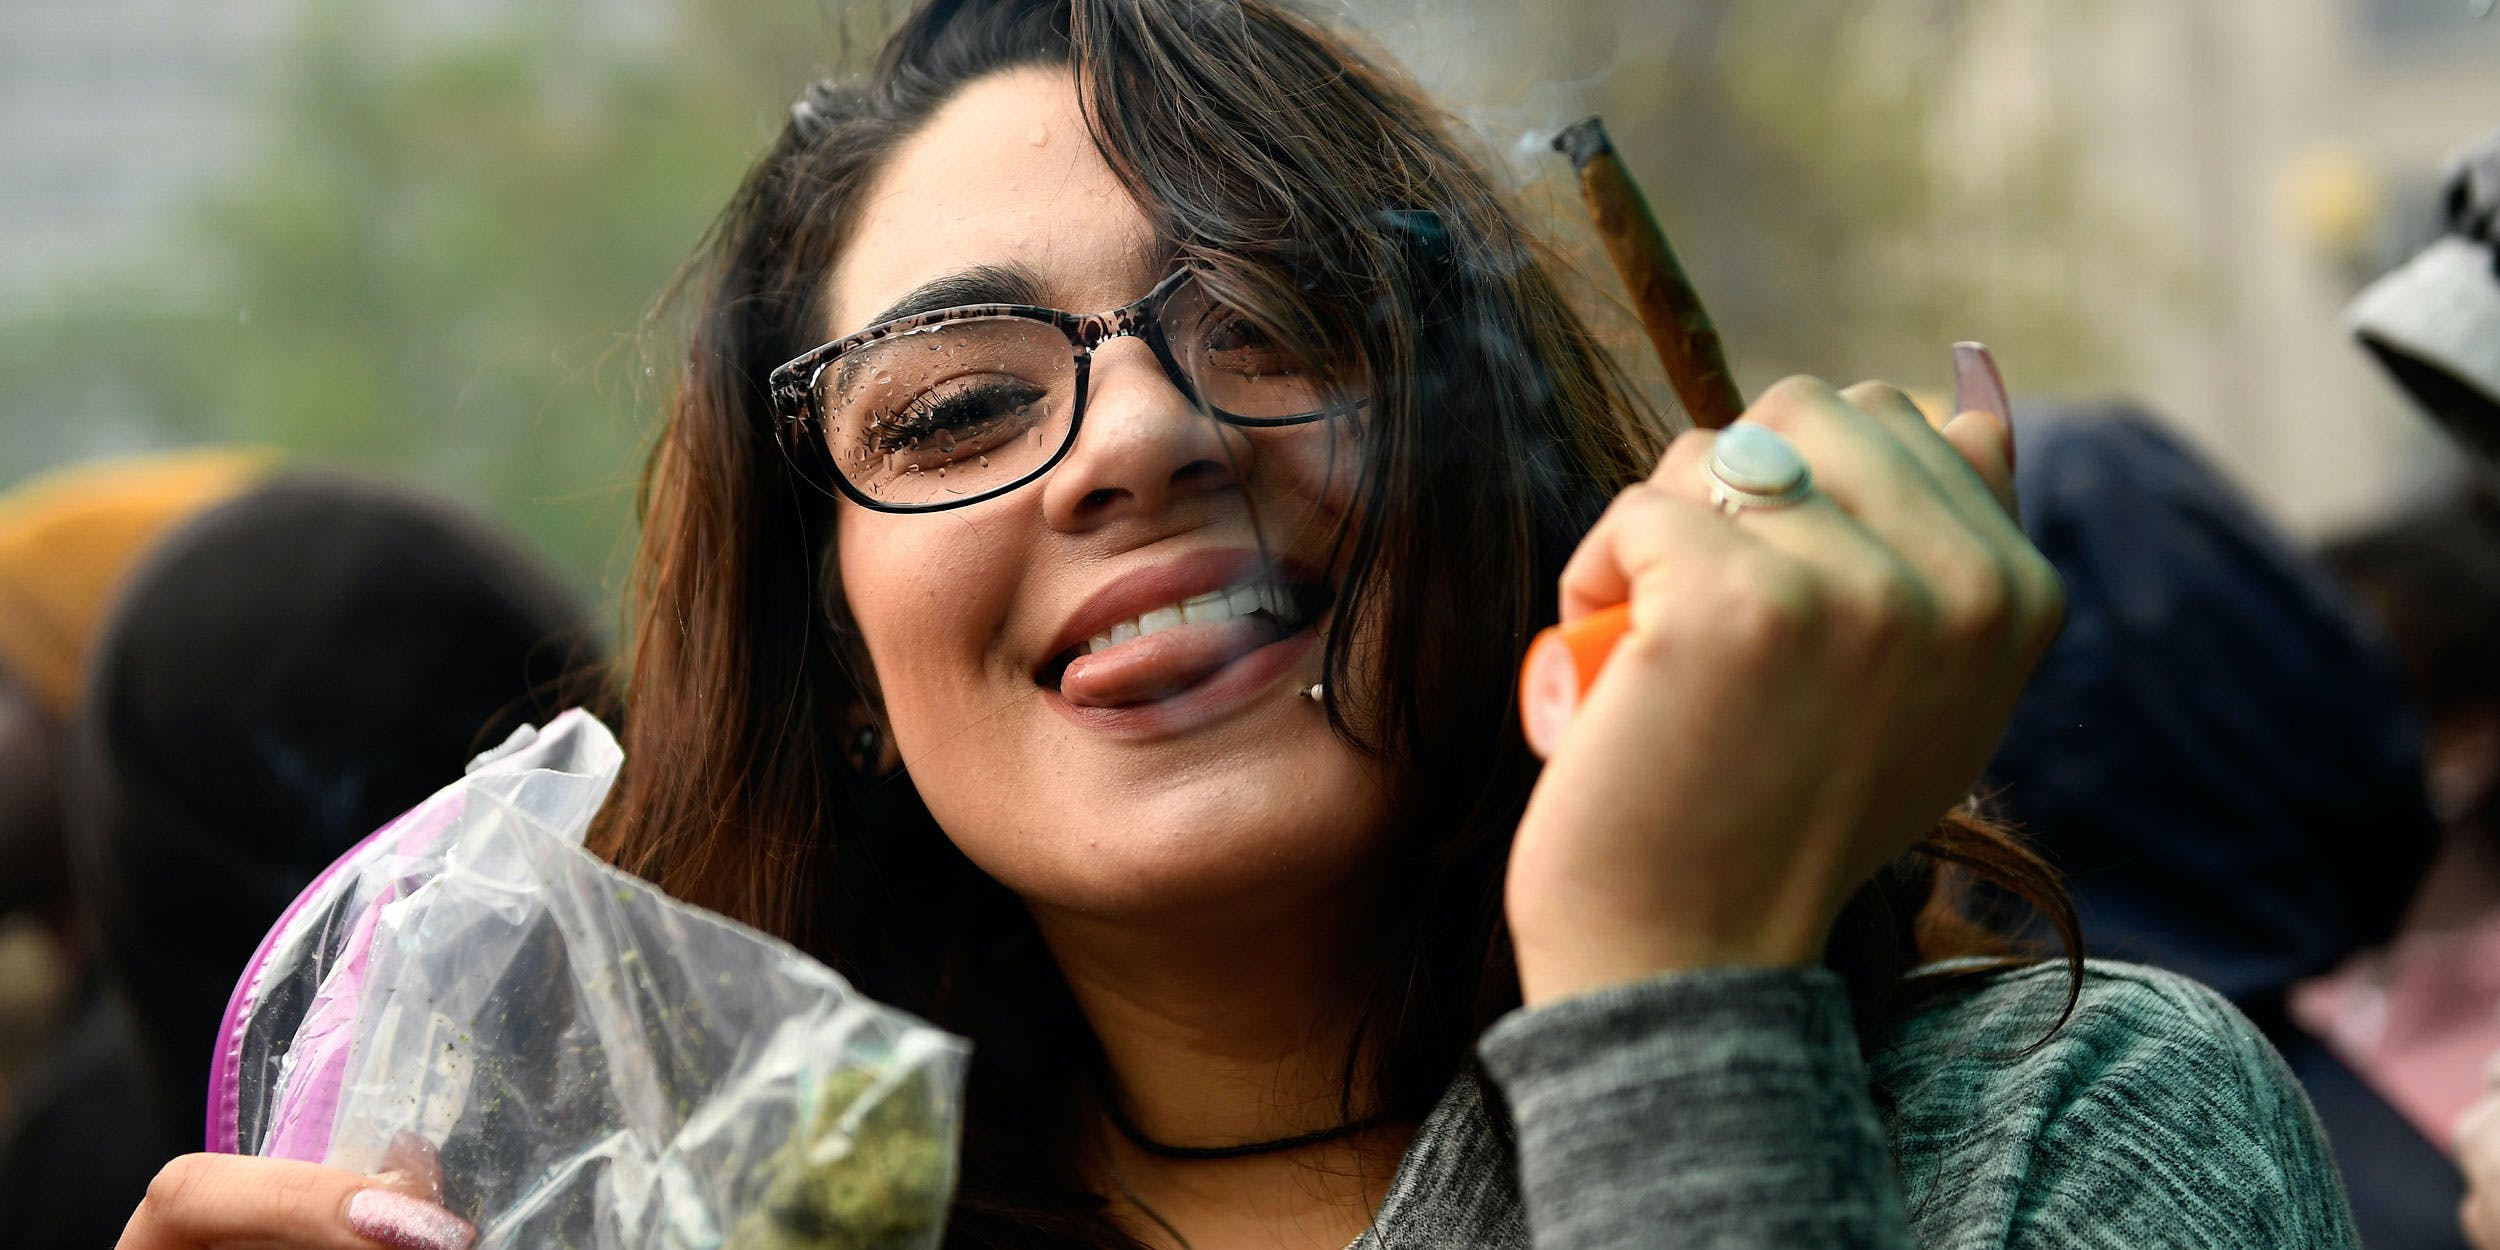 Alexus Alcala of Denver happy and still smoking after the 420 countdown in the rain at the Denver 420 Rally at Civic Center Park in downtown Denver on April 20, 2017. The state's recreational market is only six years old and the cannabis industry already has an influential political lobby.